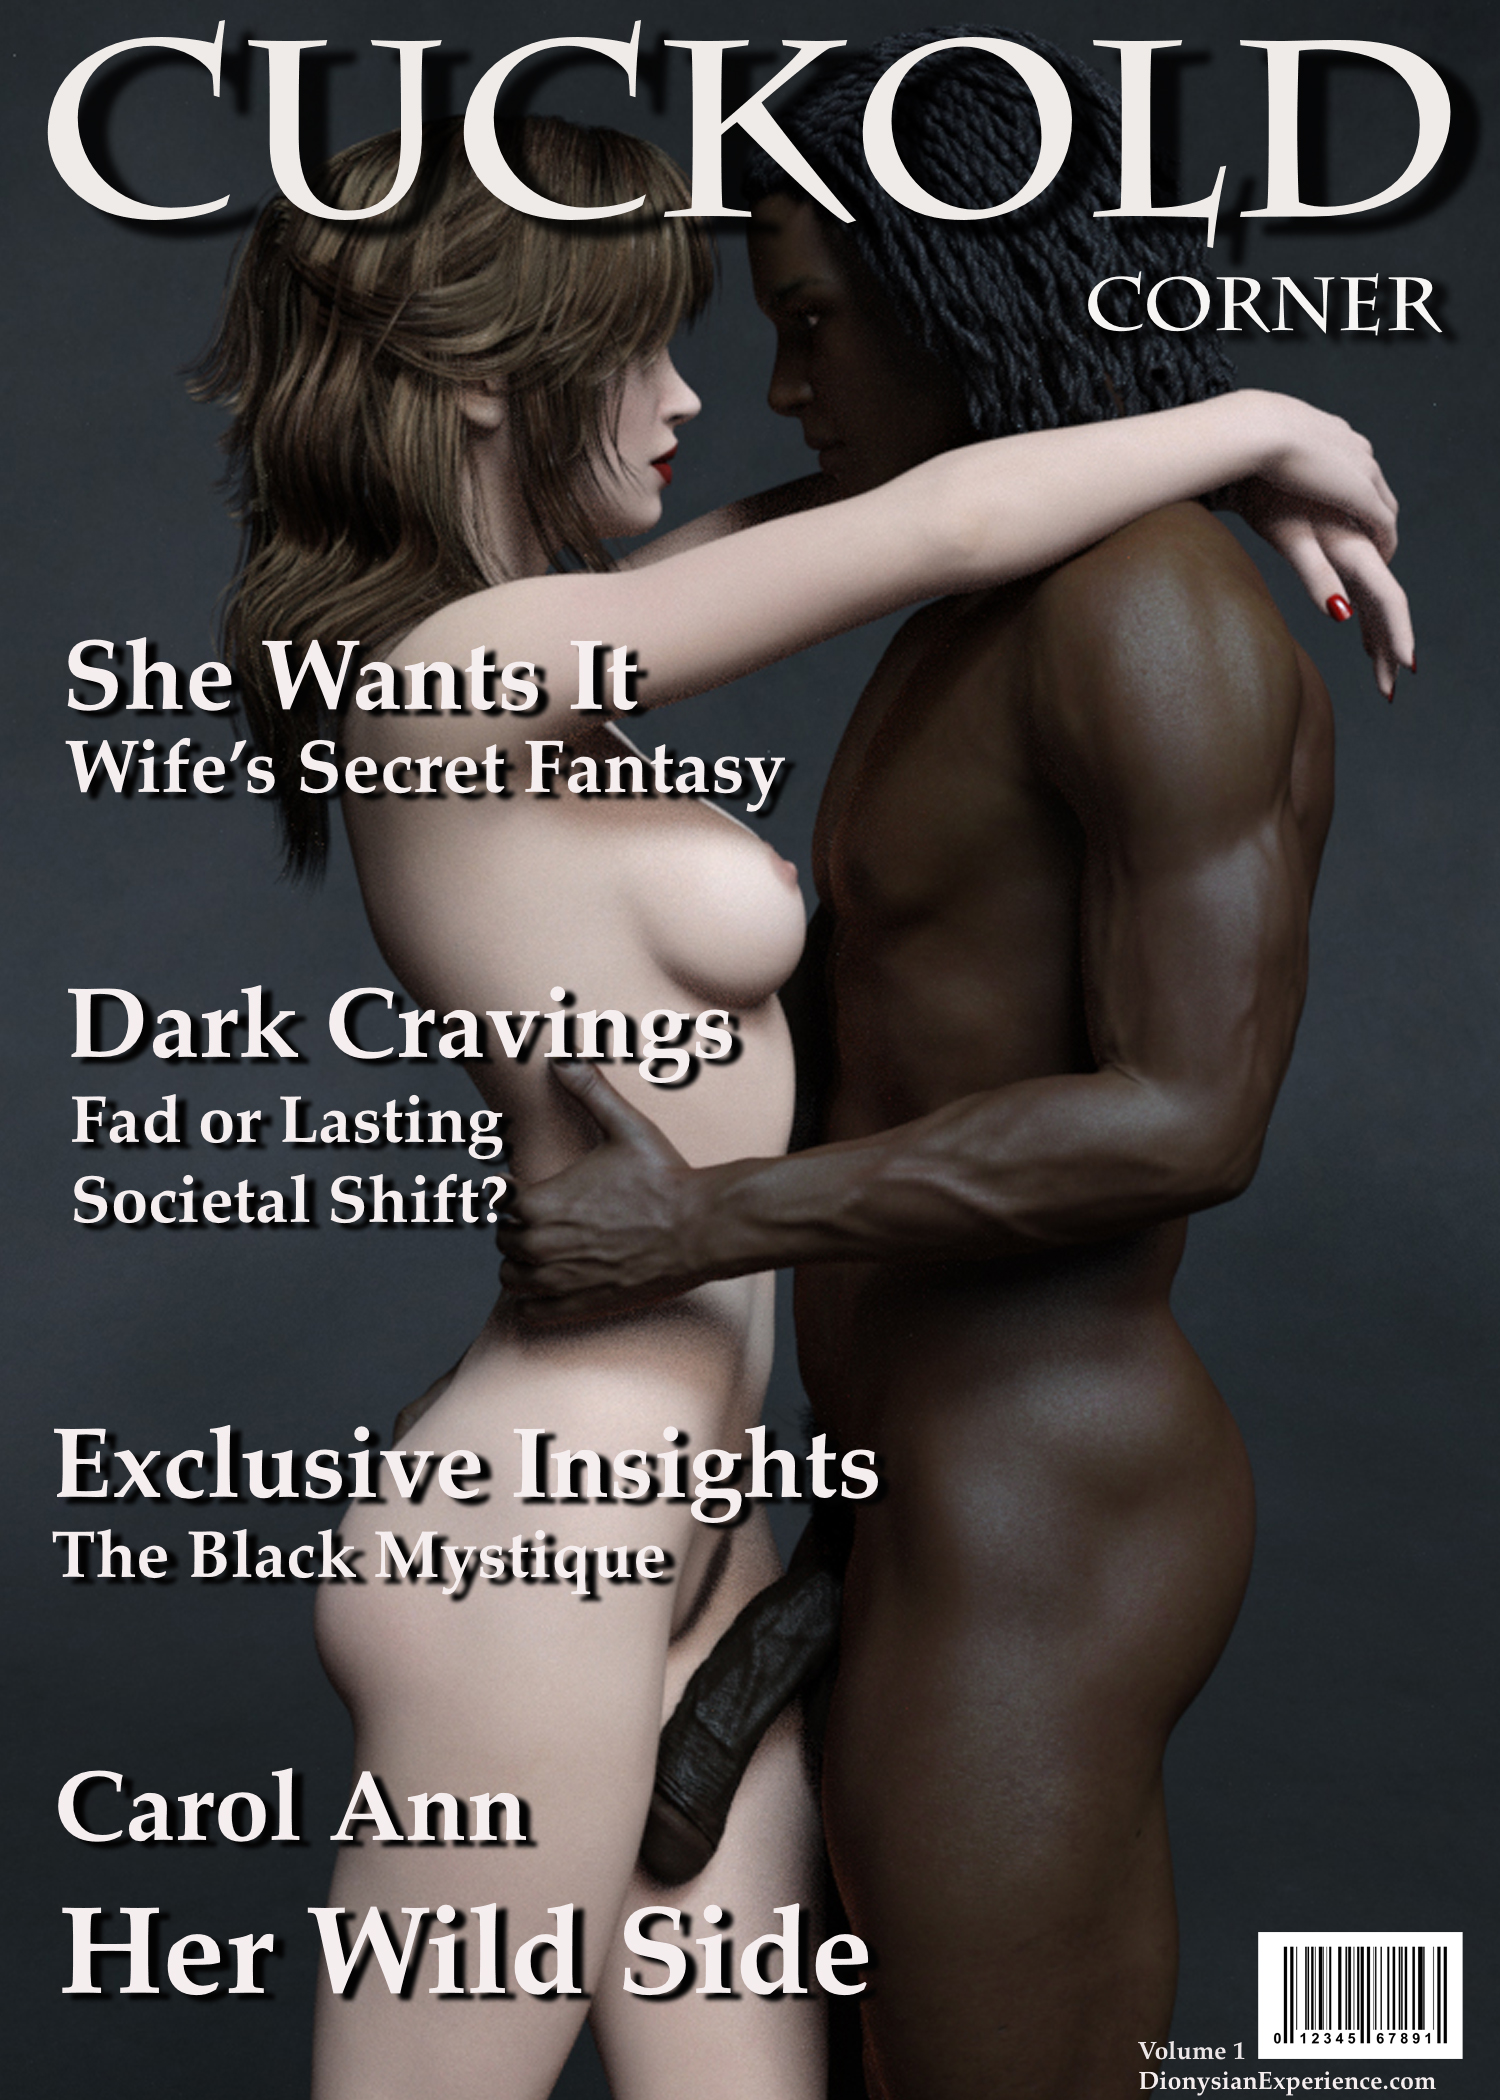 Cuckold Corner: Carol Ann & The Black Mystique (Part I)